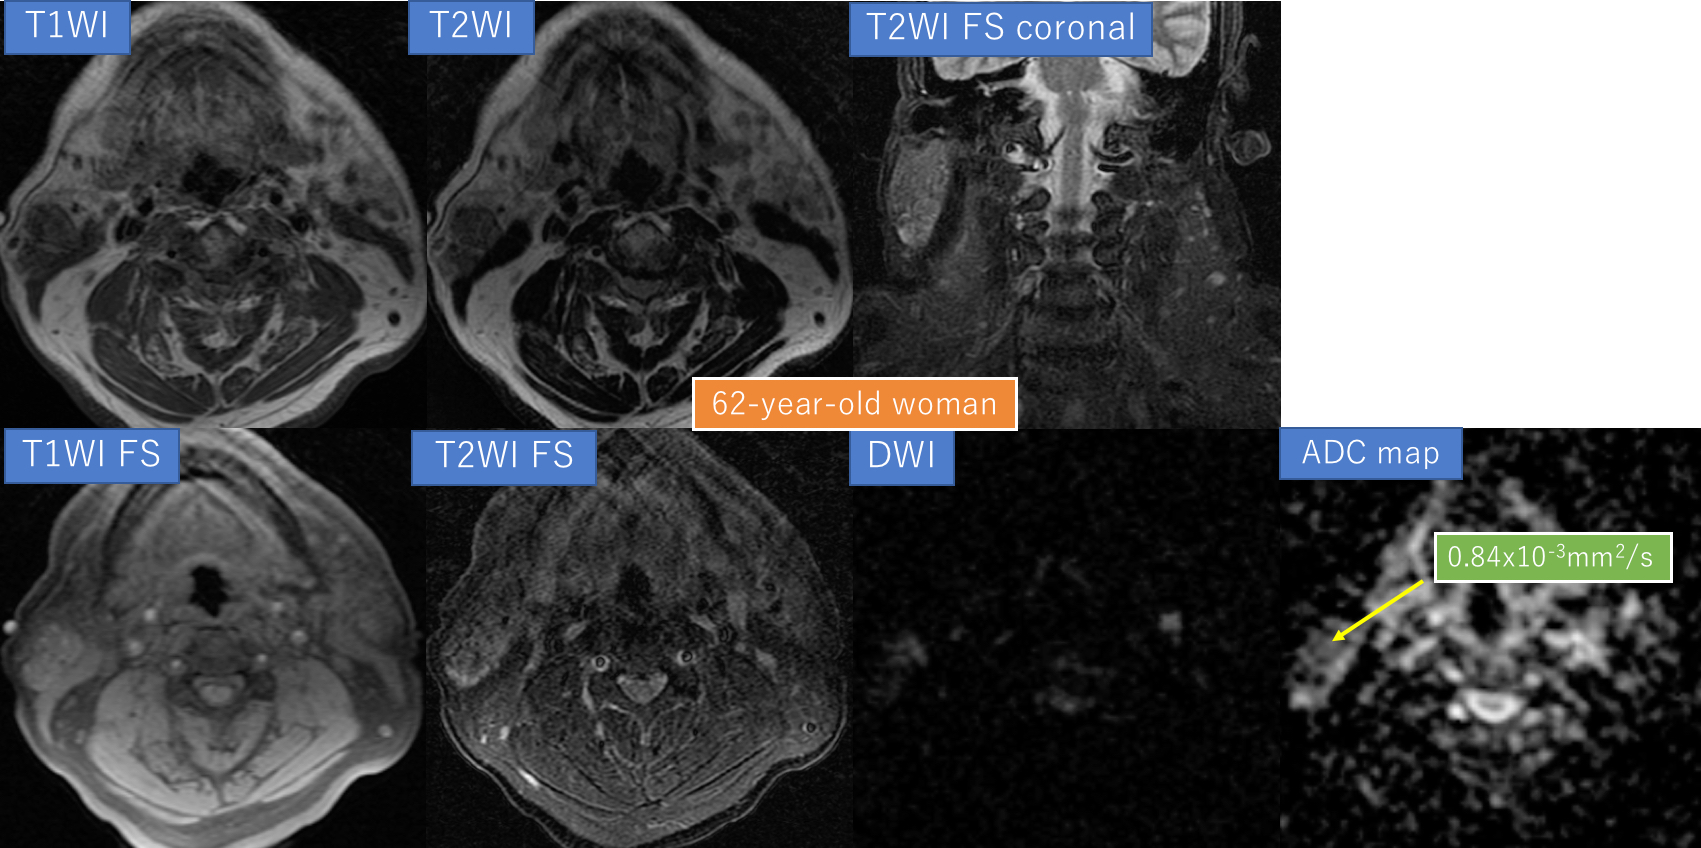 例題5. 62-year-old woman with right parotid gland tumor